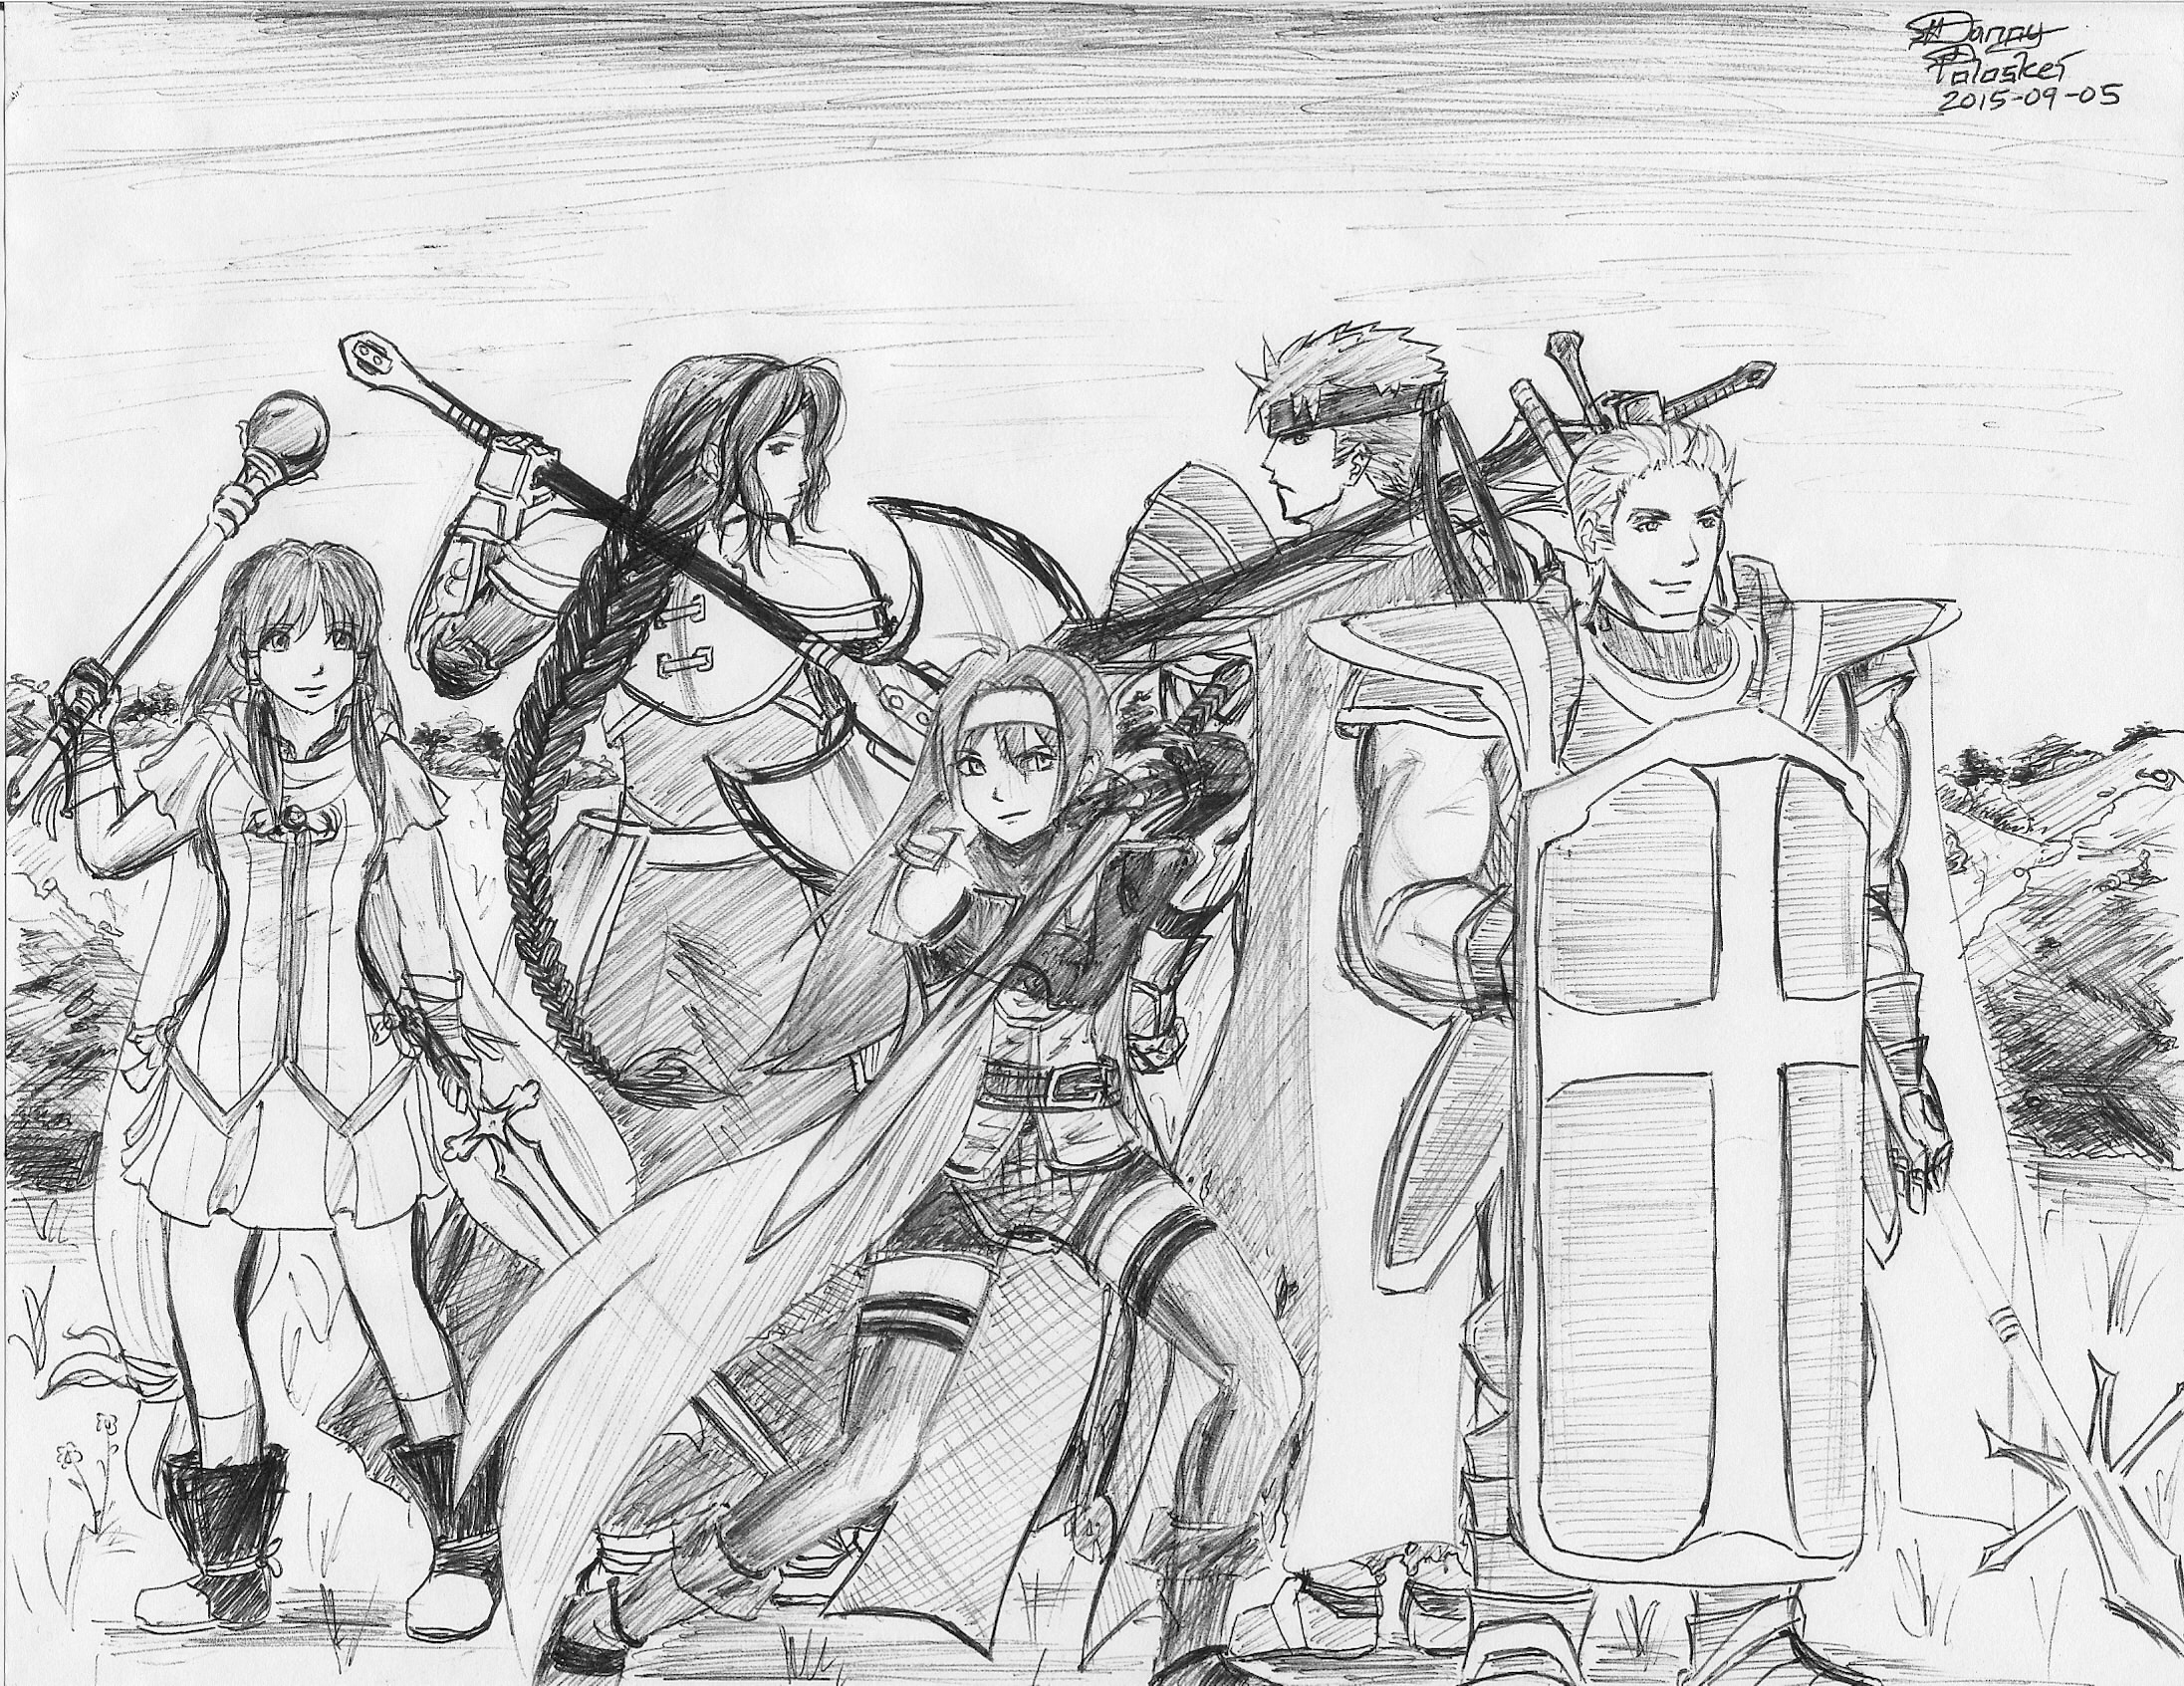 Fire Emblem: Path of Radiance - Mist, Titania, Mia, Ike, and Gatrie by Danny Poloskei